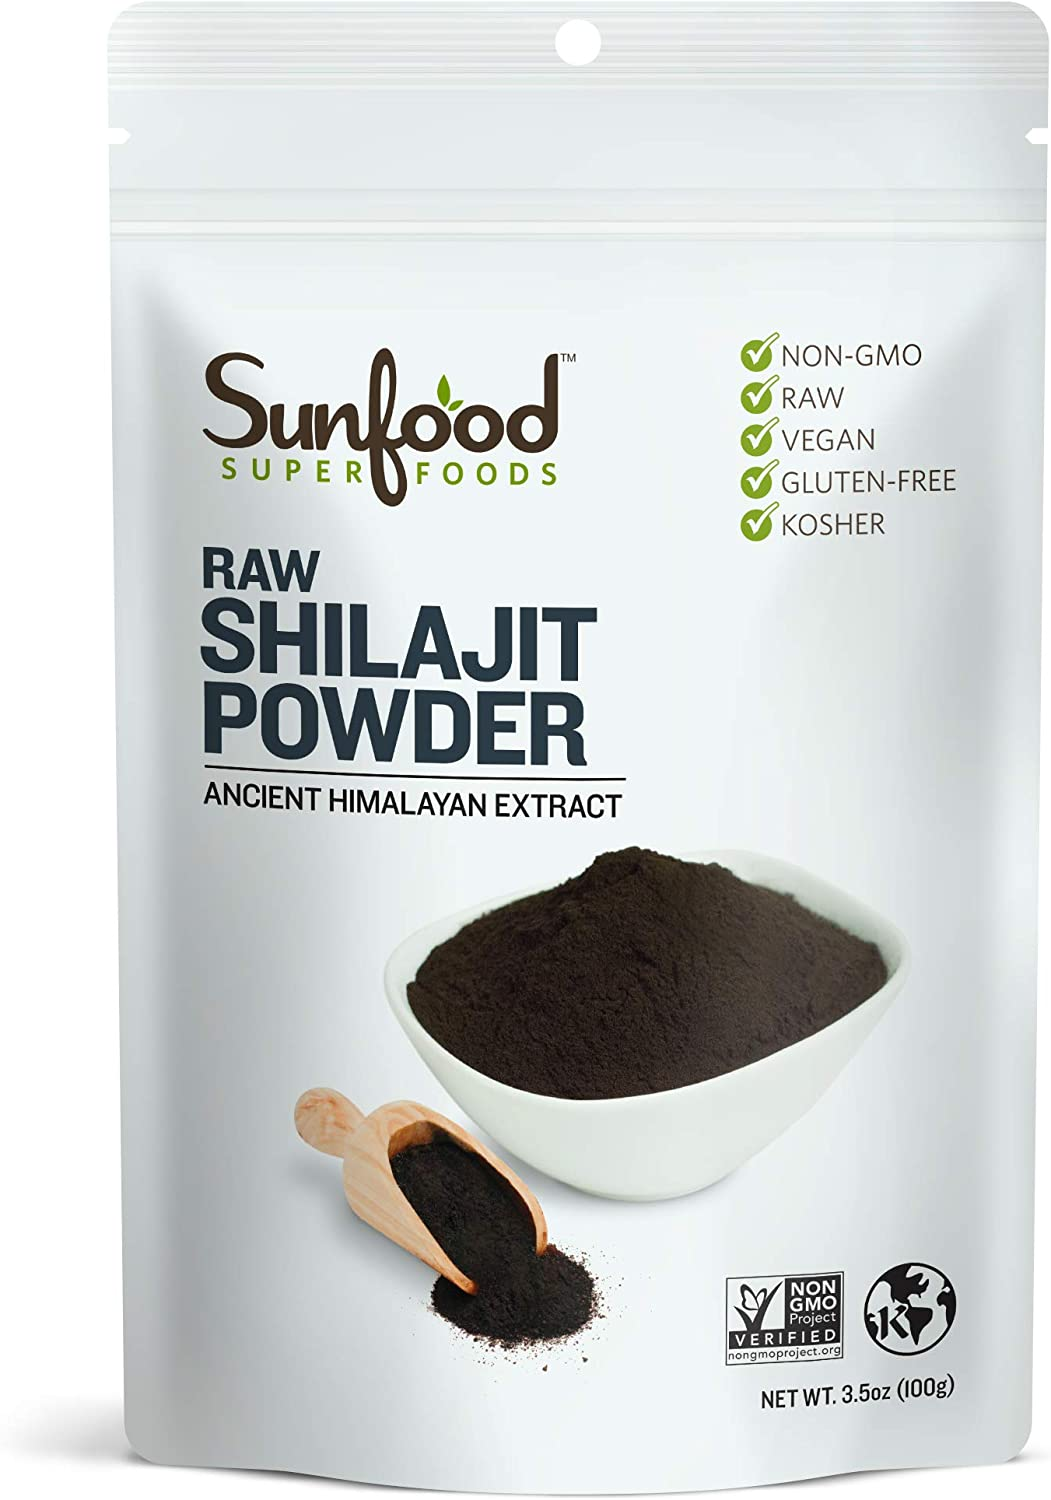 Sunfood Superfoods Shilajit Powder. Potent Adaptogenic Herb. Purest Highest Quality Product. Hand Harvested from High Altitude Himalayan Mountains. Nutrient Rich- Fulvic Acid, Iron. 3.5 oz Bag